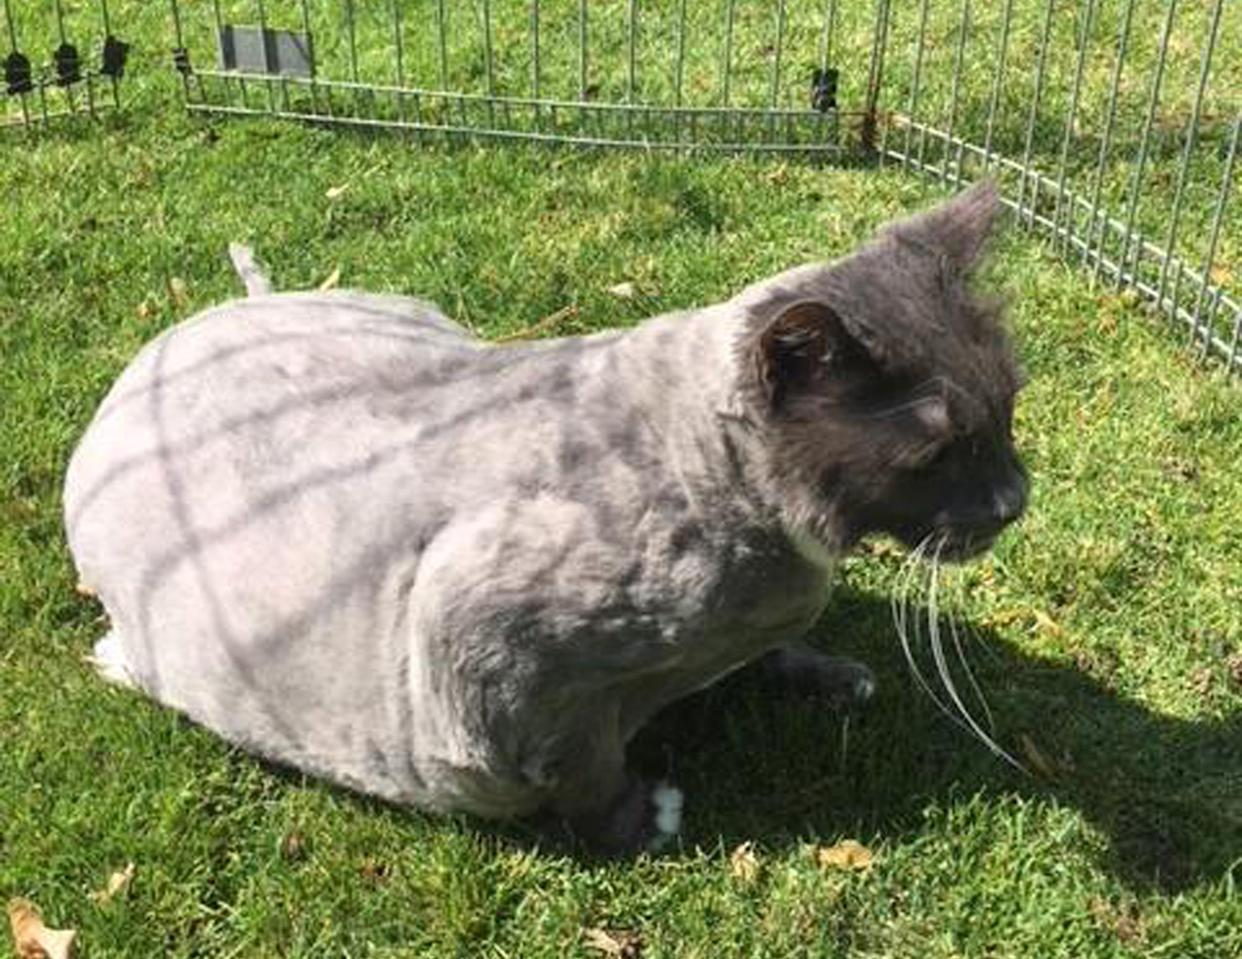 The cat after its transformation from a dreadlocked mass of fur. Source: Douglas County Animal Care & Services via Ferrari/Australscope